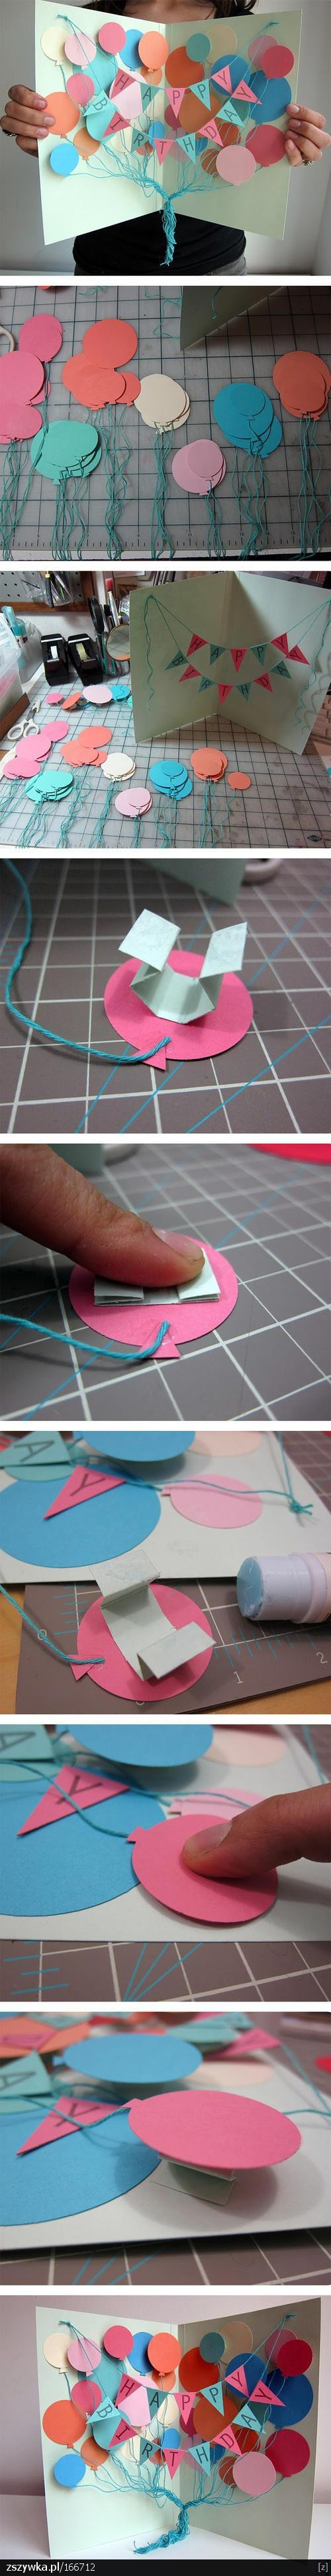 diy cards @ Do It Yourself Pins